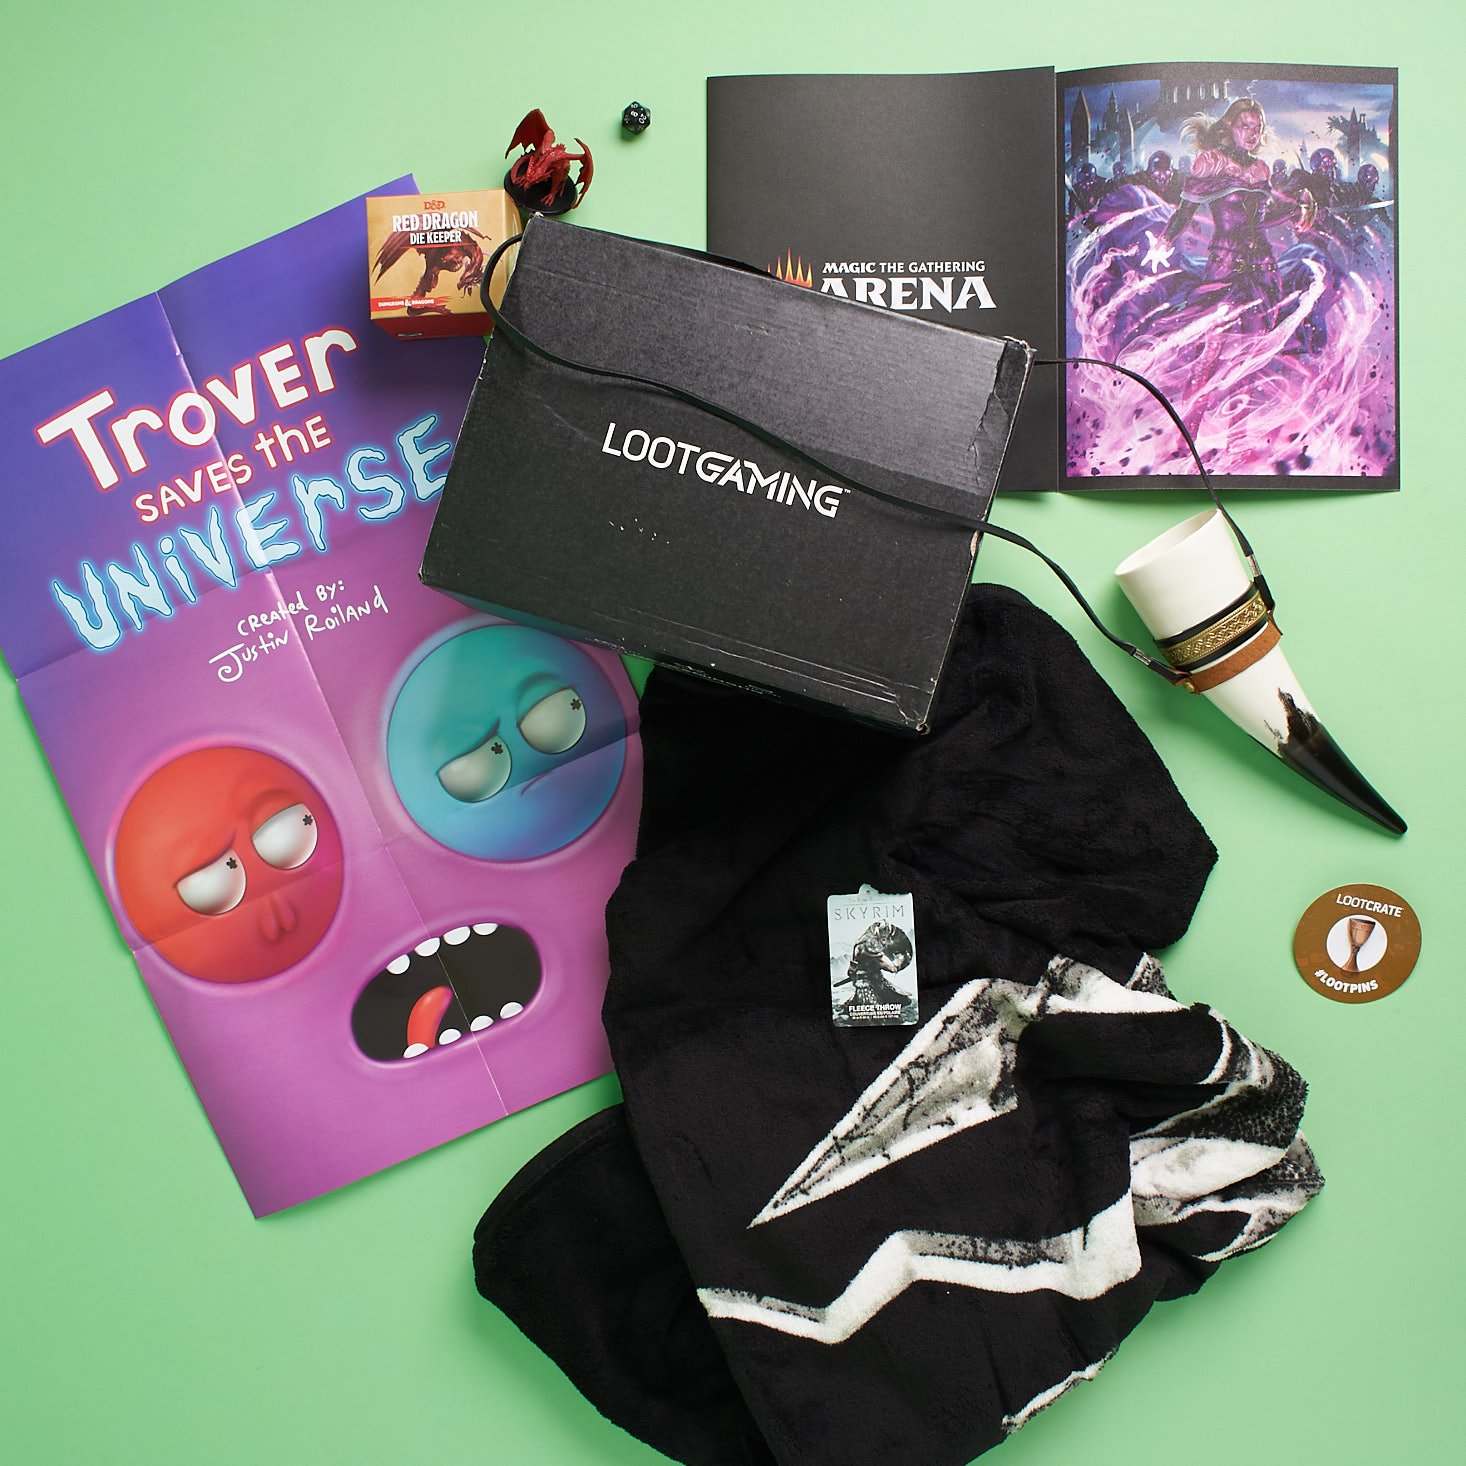 Looter Love: Loot Gaming HUZZAH! Crate